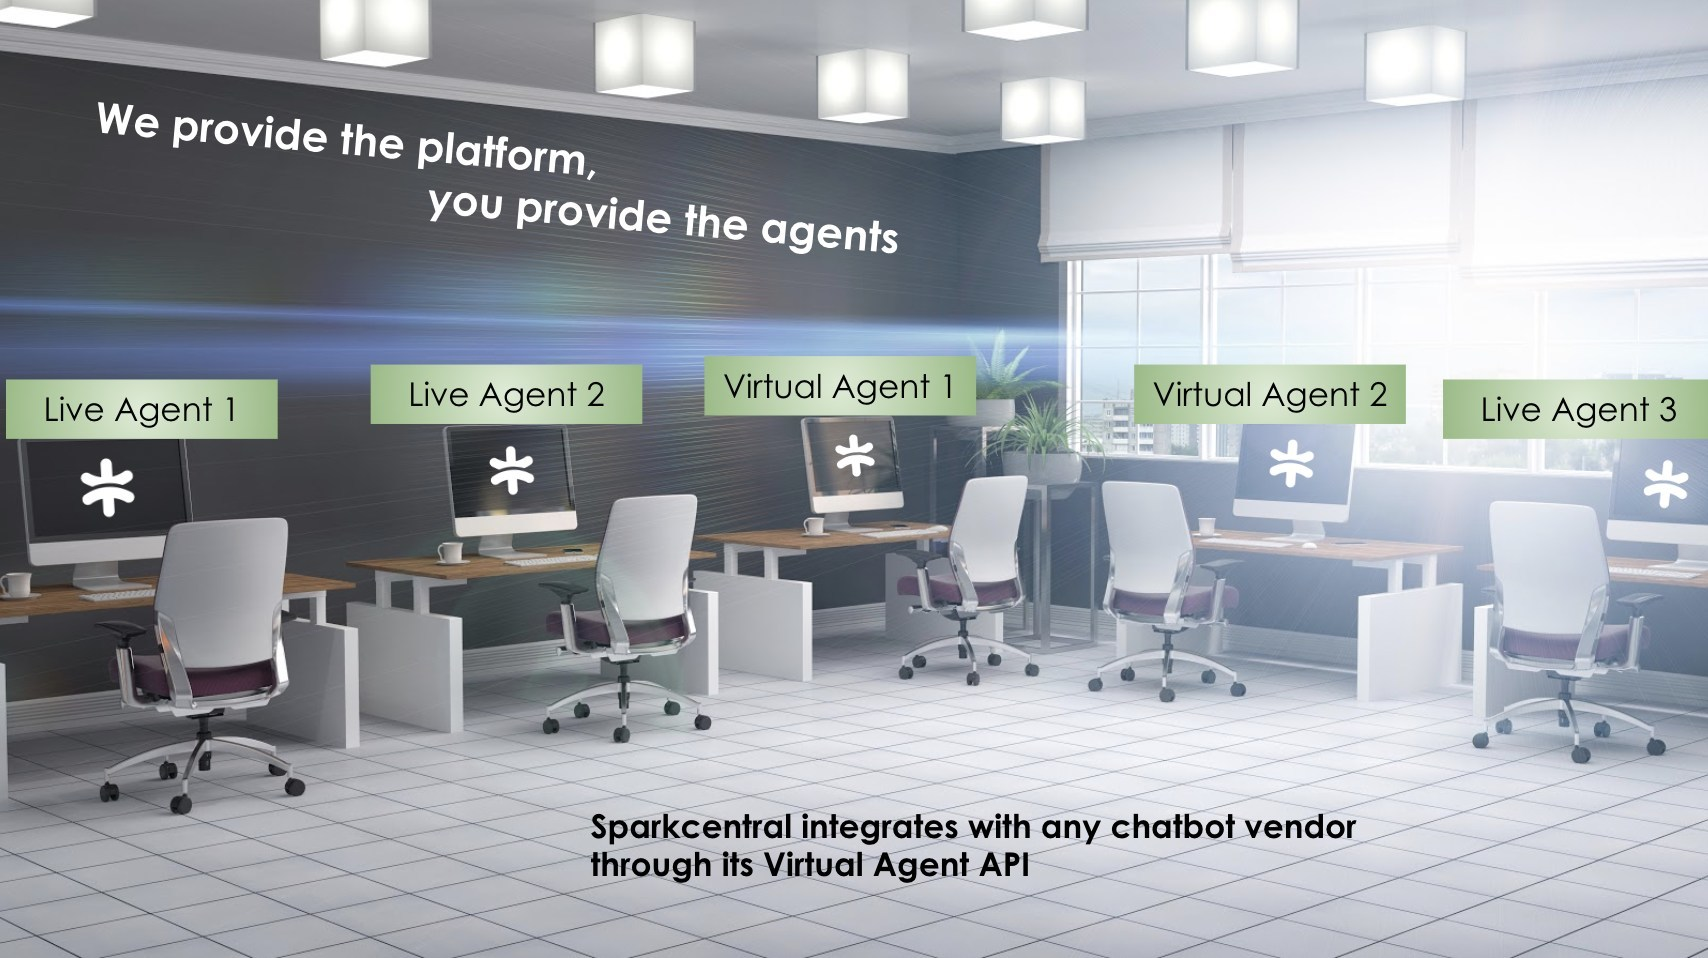 Virtual Agent Framework, is a solution complementing the Sparkcentral Messaging Customer Service Platform